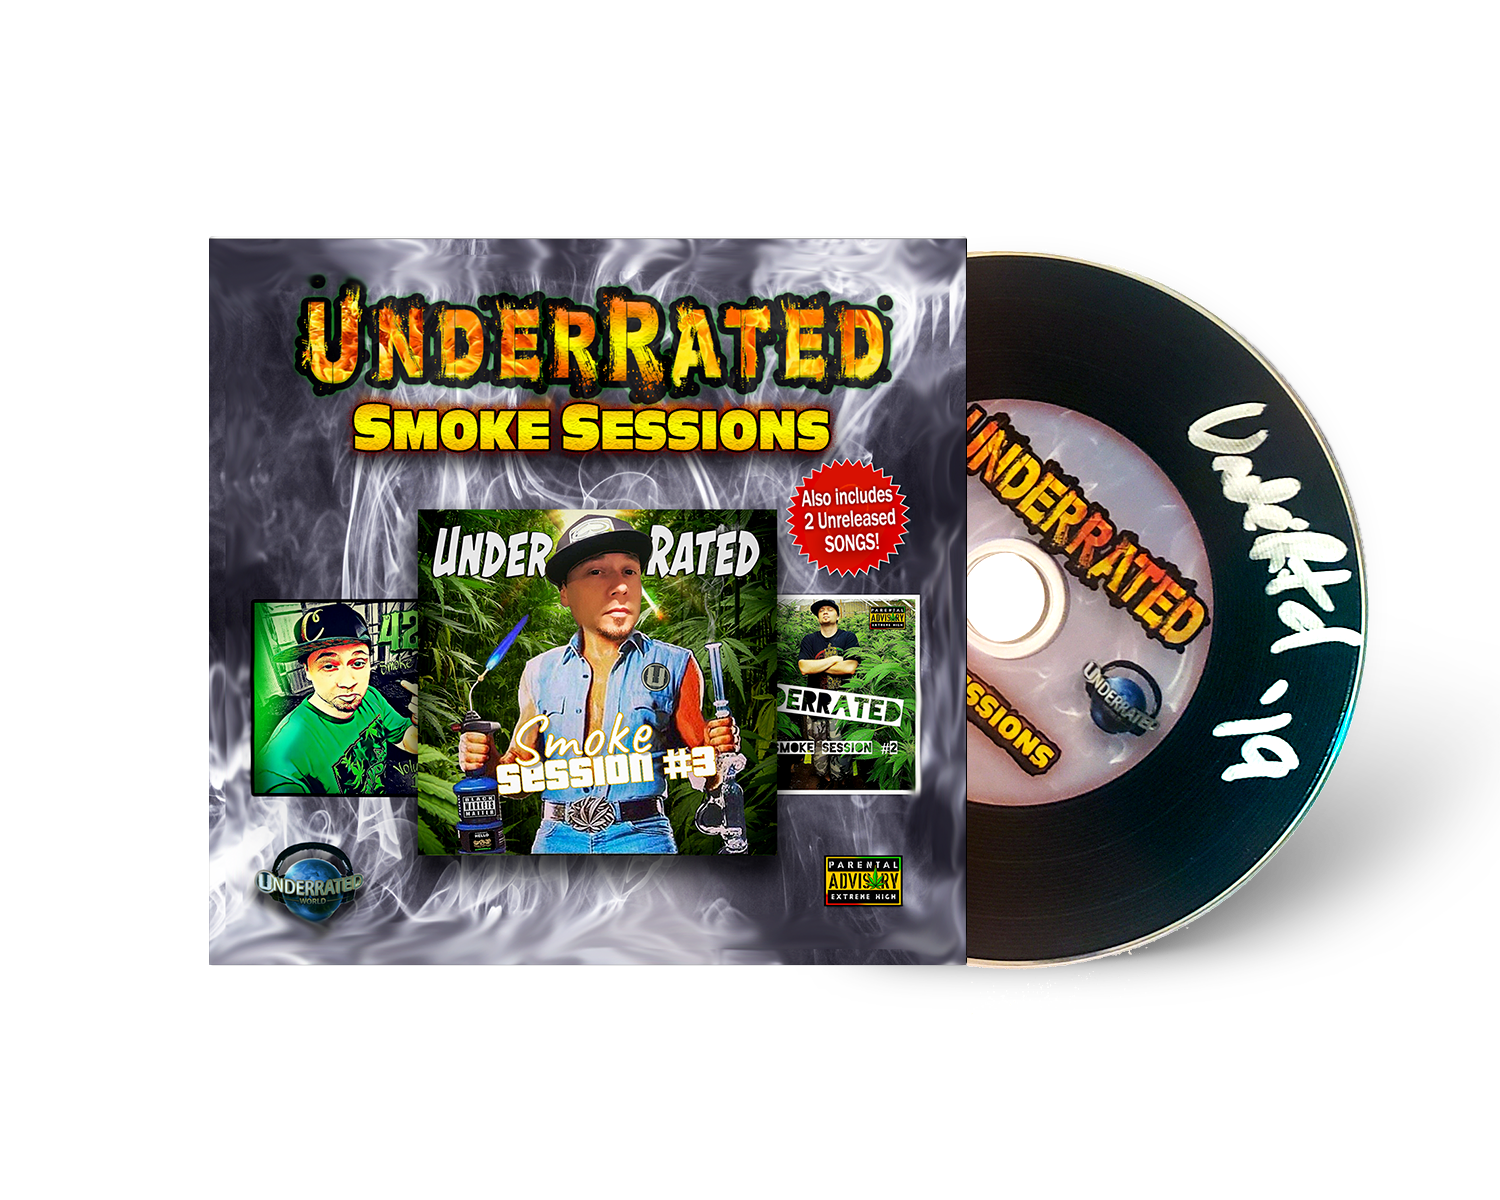 UnderRated - Smoke Sessions CD (Autographed)